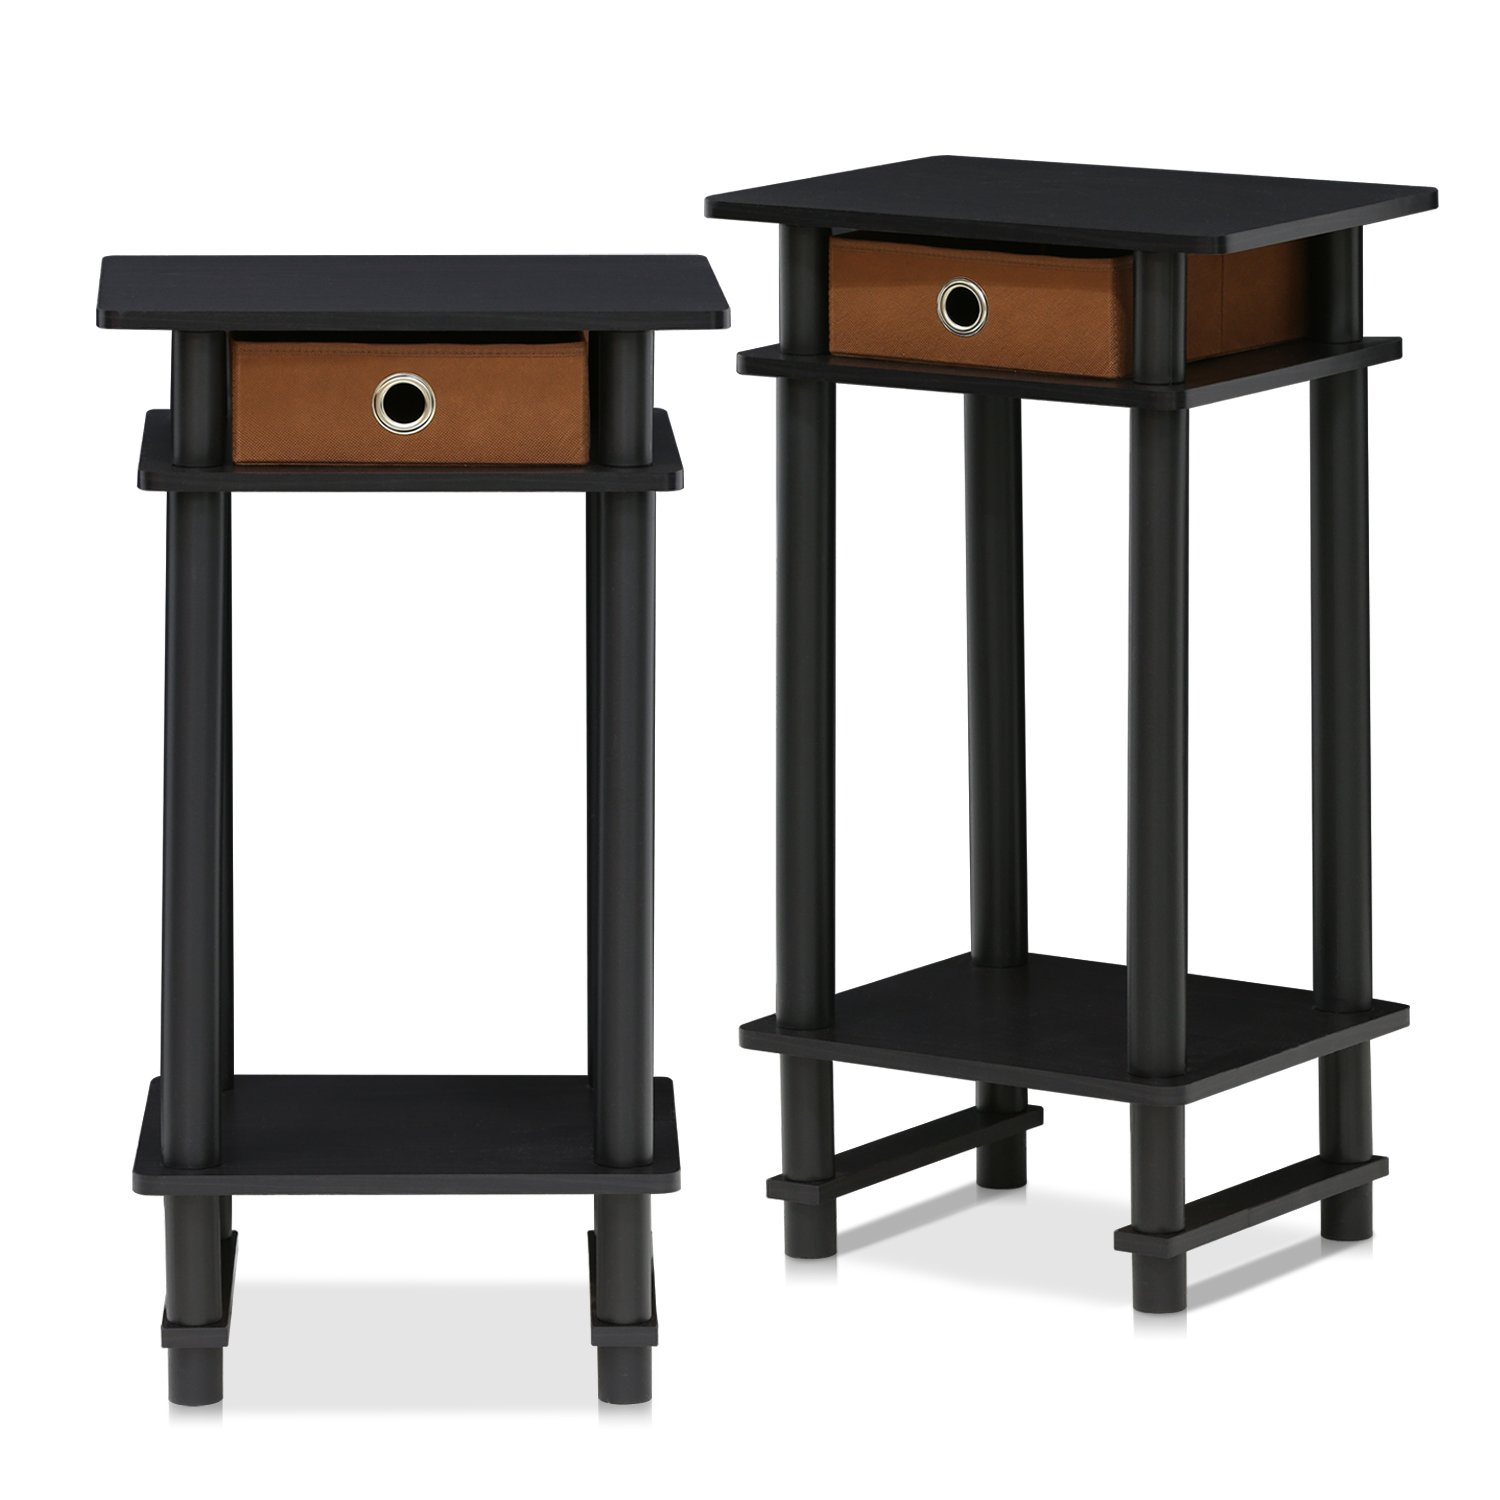 Furinno 2-17017EX Turn-N-Tube End Table, 2-Pack, Espresso by Furinno